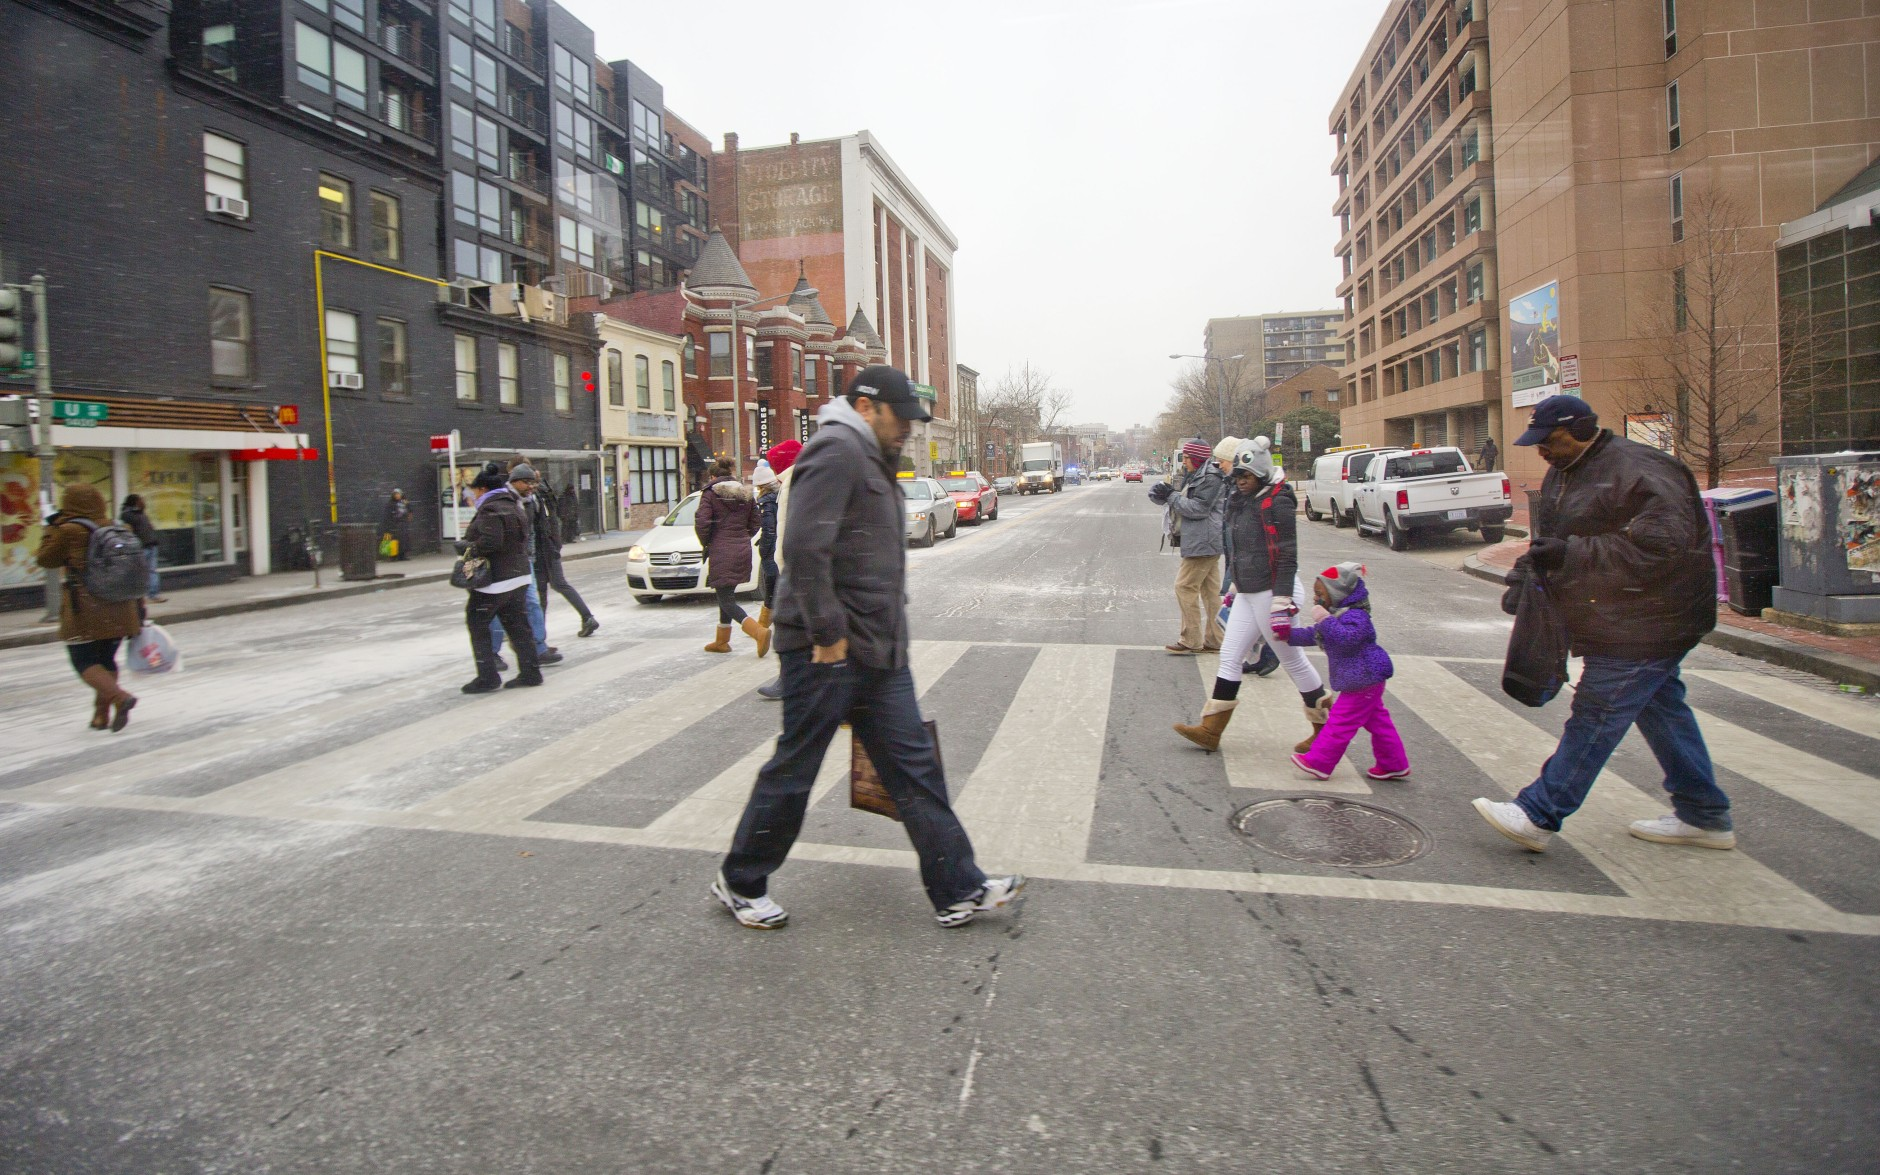 Pedestrians cross an intersection of U street and 14th Street NW in Washington, Friday, Jan. 22, 2016, as the Nation's Capital hunkers down in preparation for a major snowstorm expected to begin later today. Food and supplies vanished from store shelves, five states and the District of Columbia declared states of emergency ahead of the slow-moving system. (AP Photo/Pablo Martinez Monsivais)